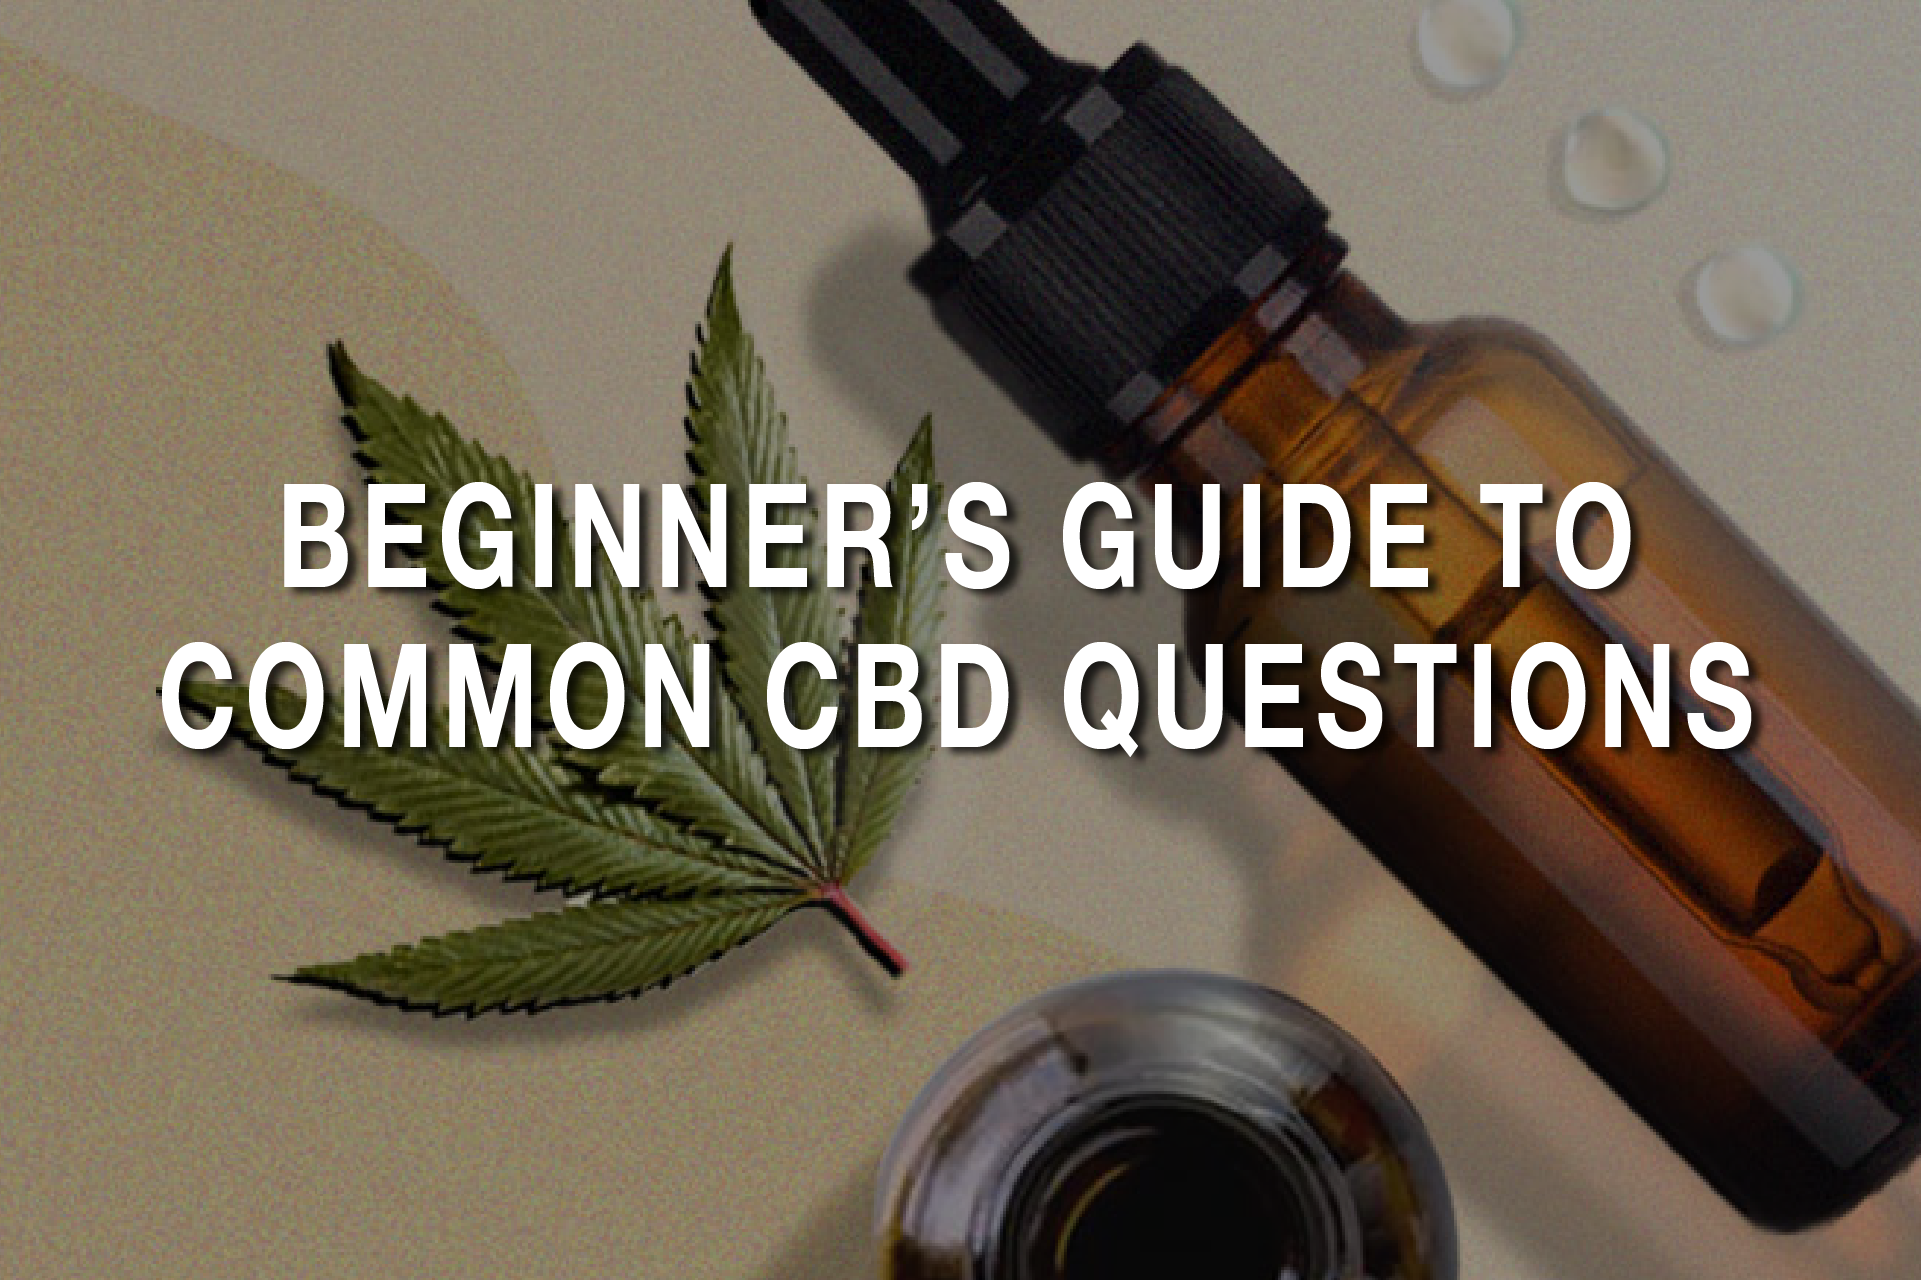 Beginner's Guide to Common CBD Questions